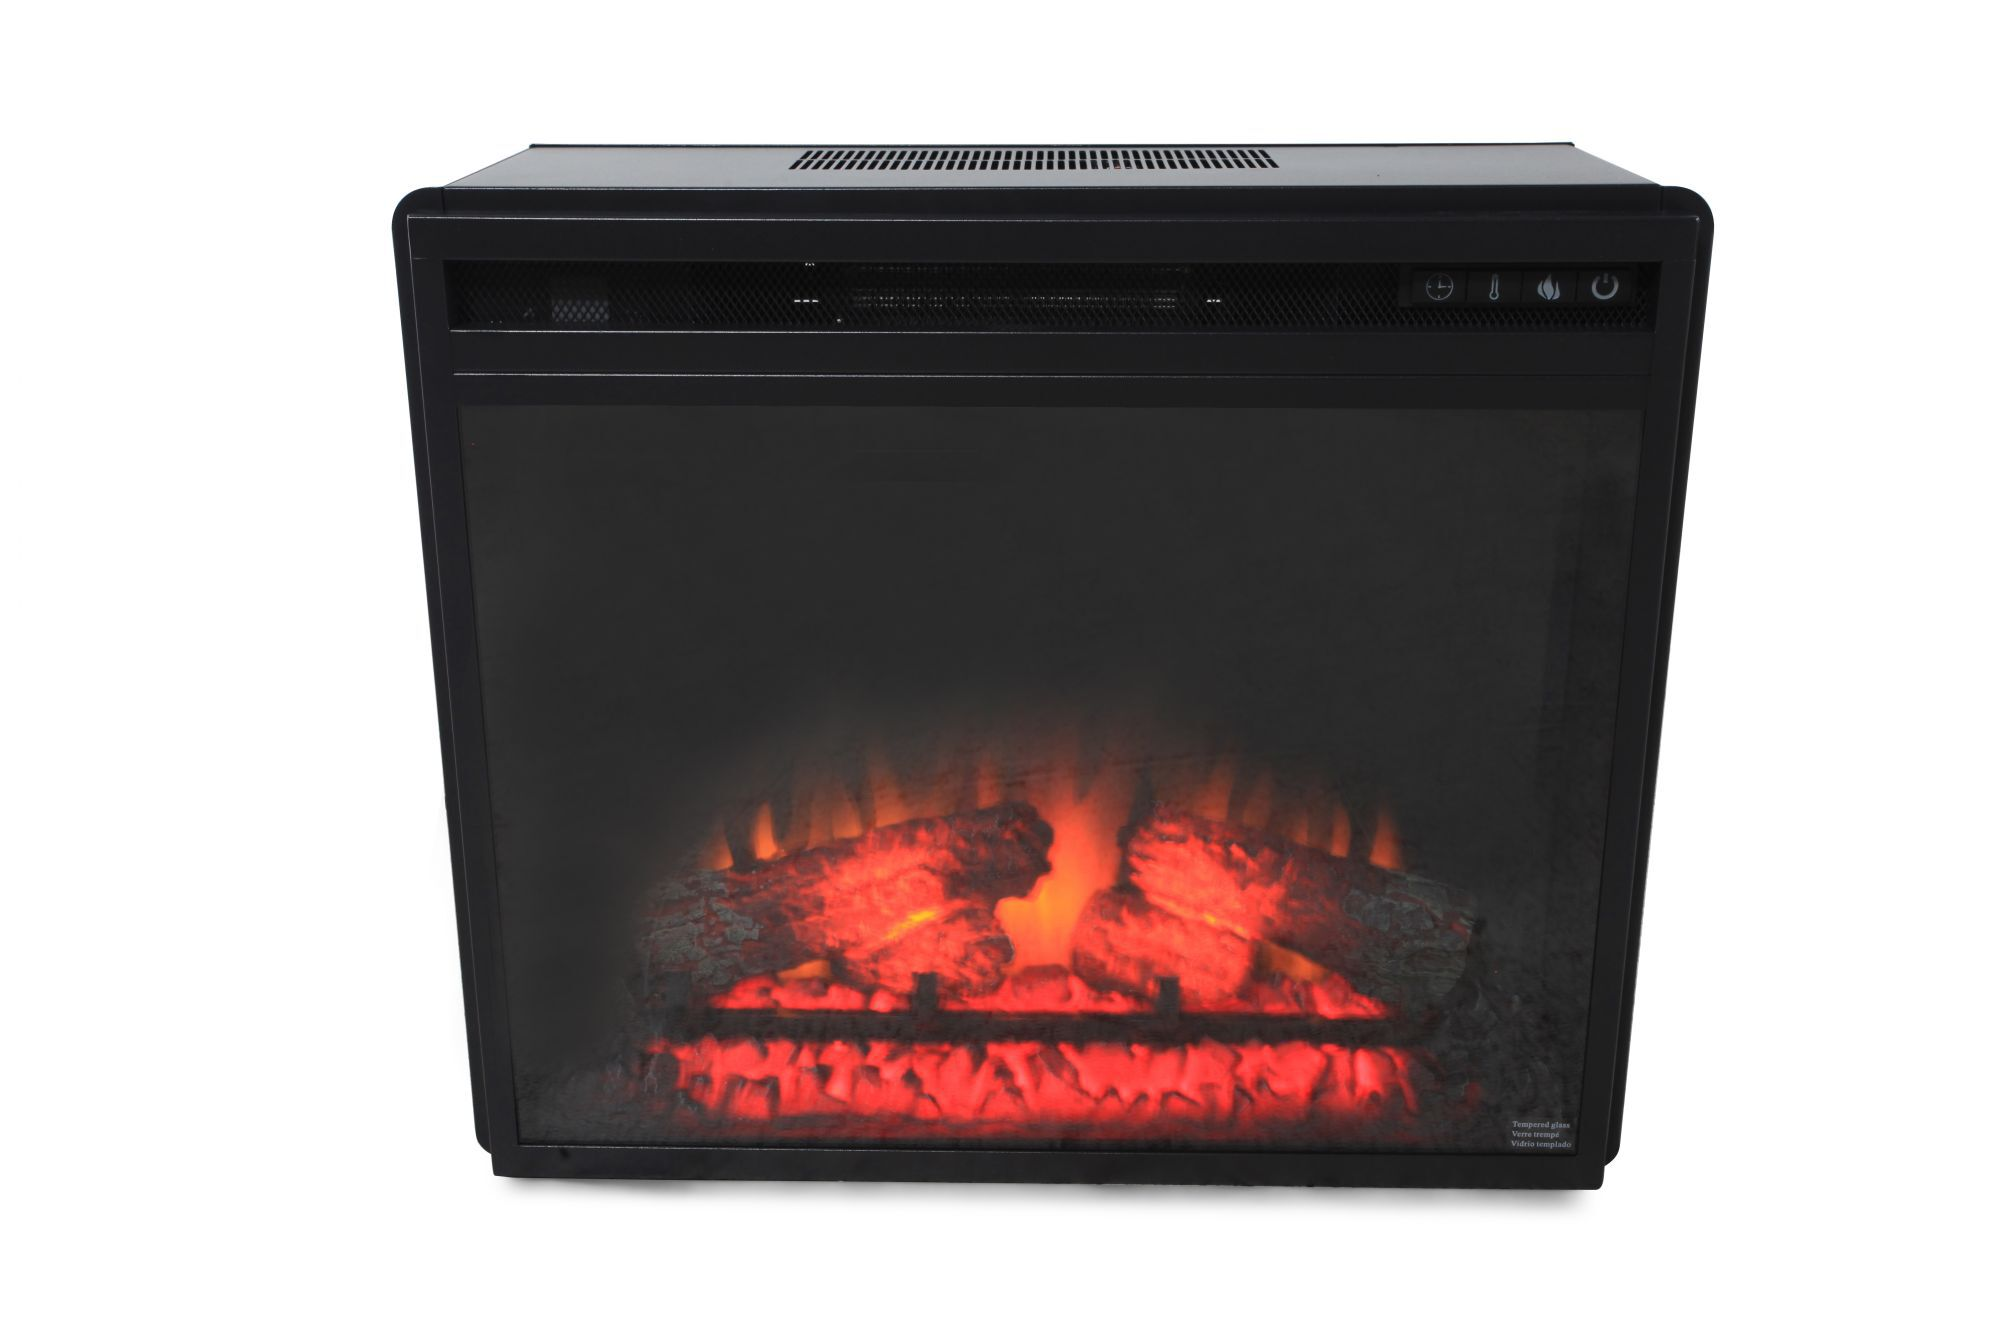 20 Remote Controlled Contemporary Fireplace Insert In Black